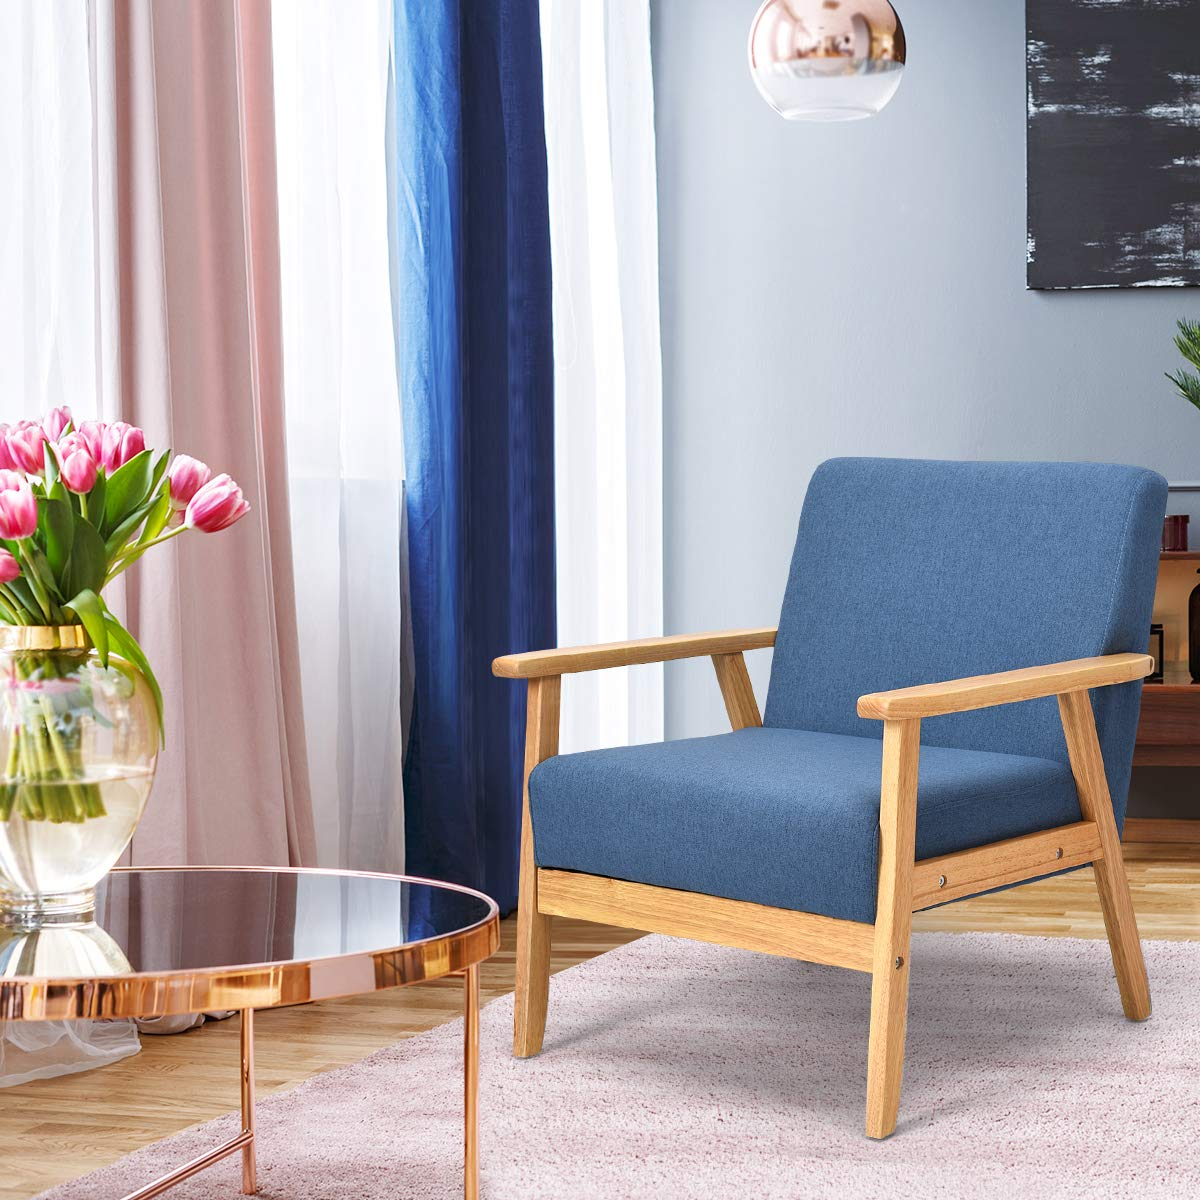 Giantex Mid-Century Modern Child Armchair w/Armrests, Sturdy & Durable Rubber Wood Club Chair w/Cushions, Wood Frame & Linen Arm Chair, Solid Wood Frame Low Lounge Armchair (Blue) by Giantex